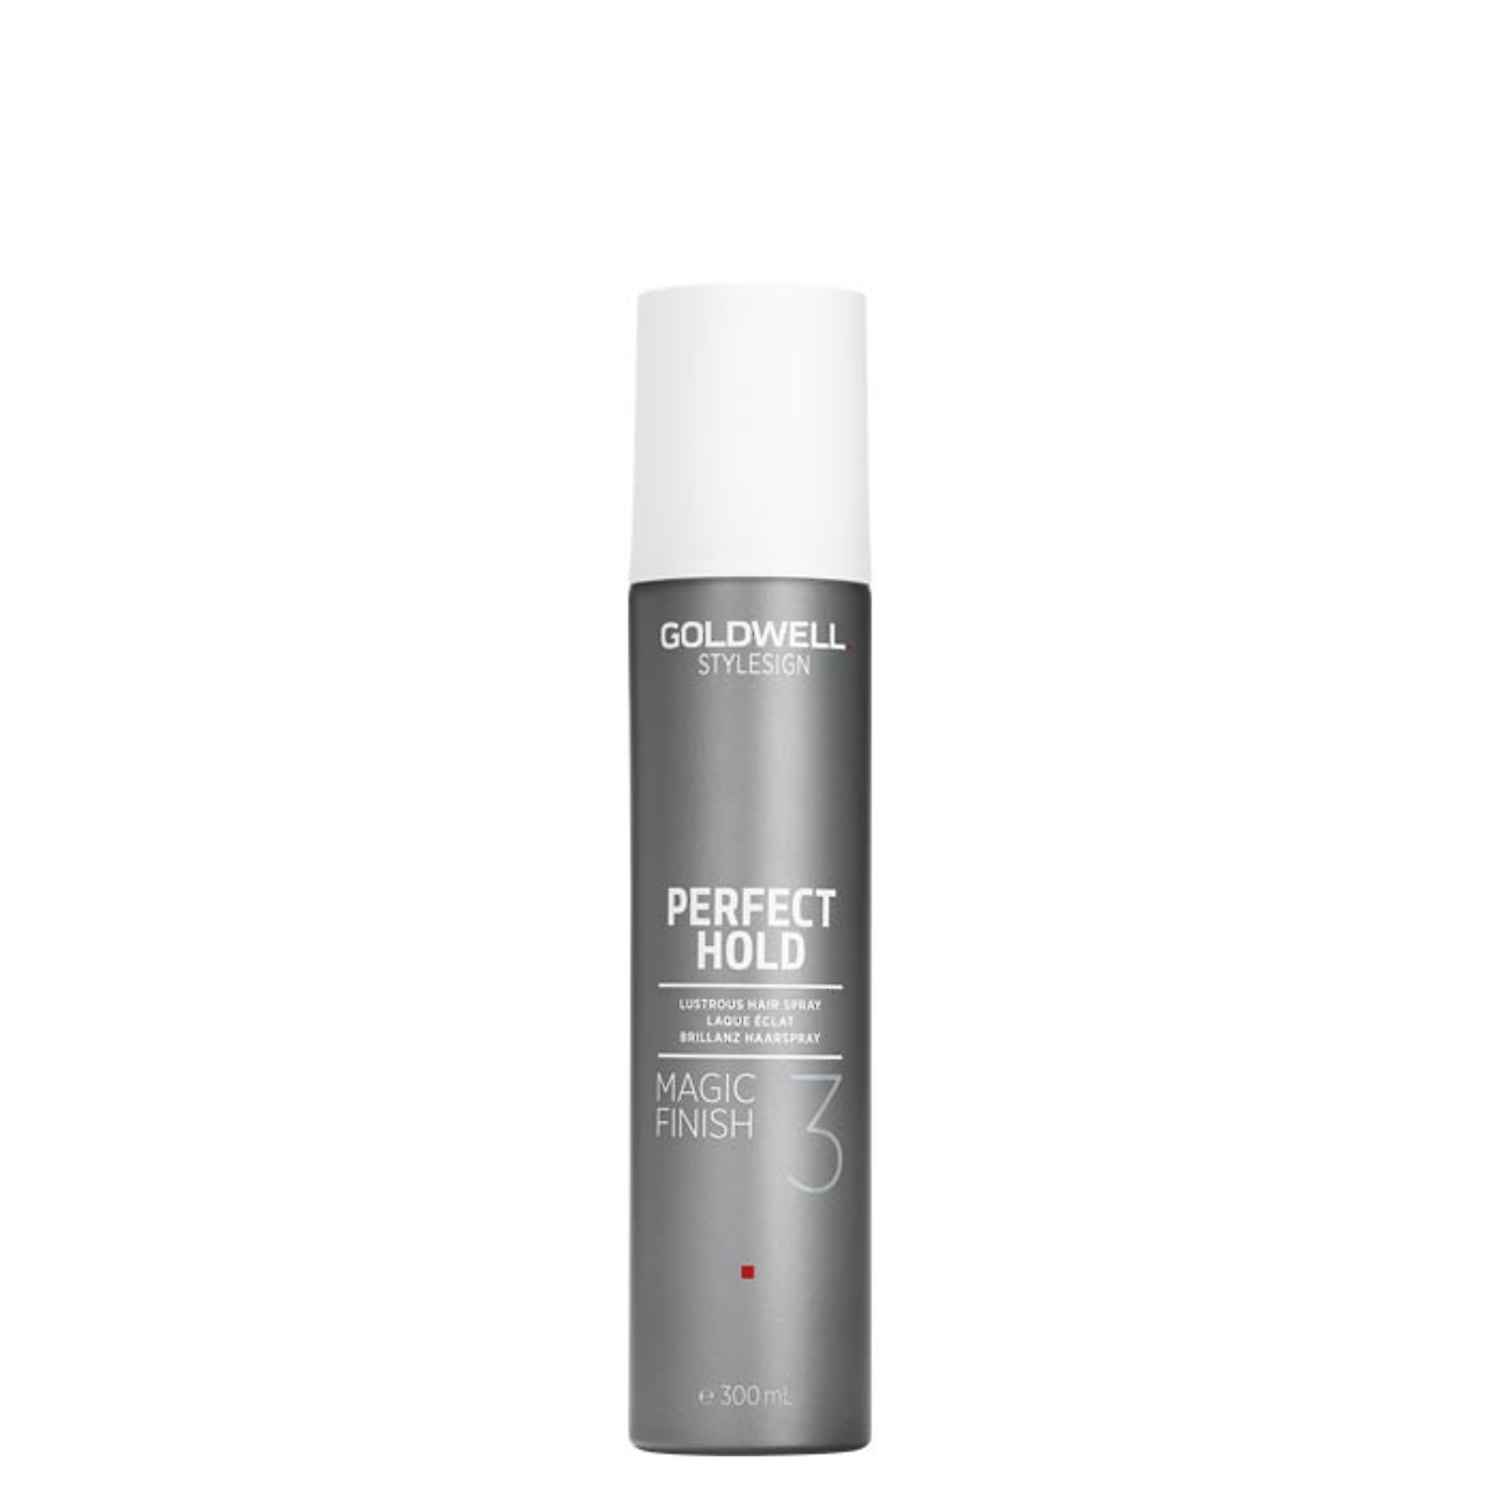 GOLDWELL Style Sign Perfect Hold MAGIC FINISH 300 ml